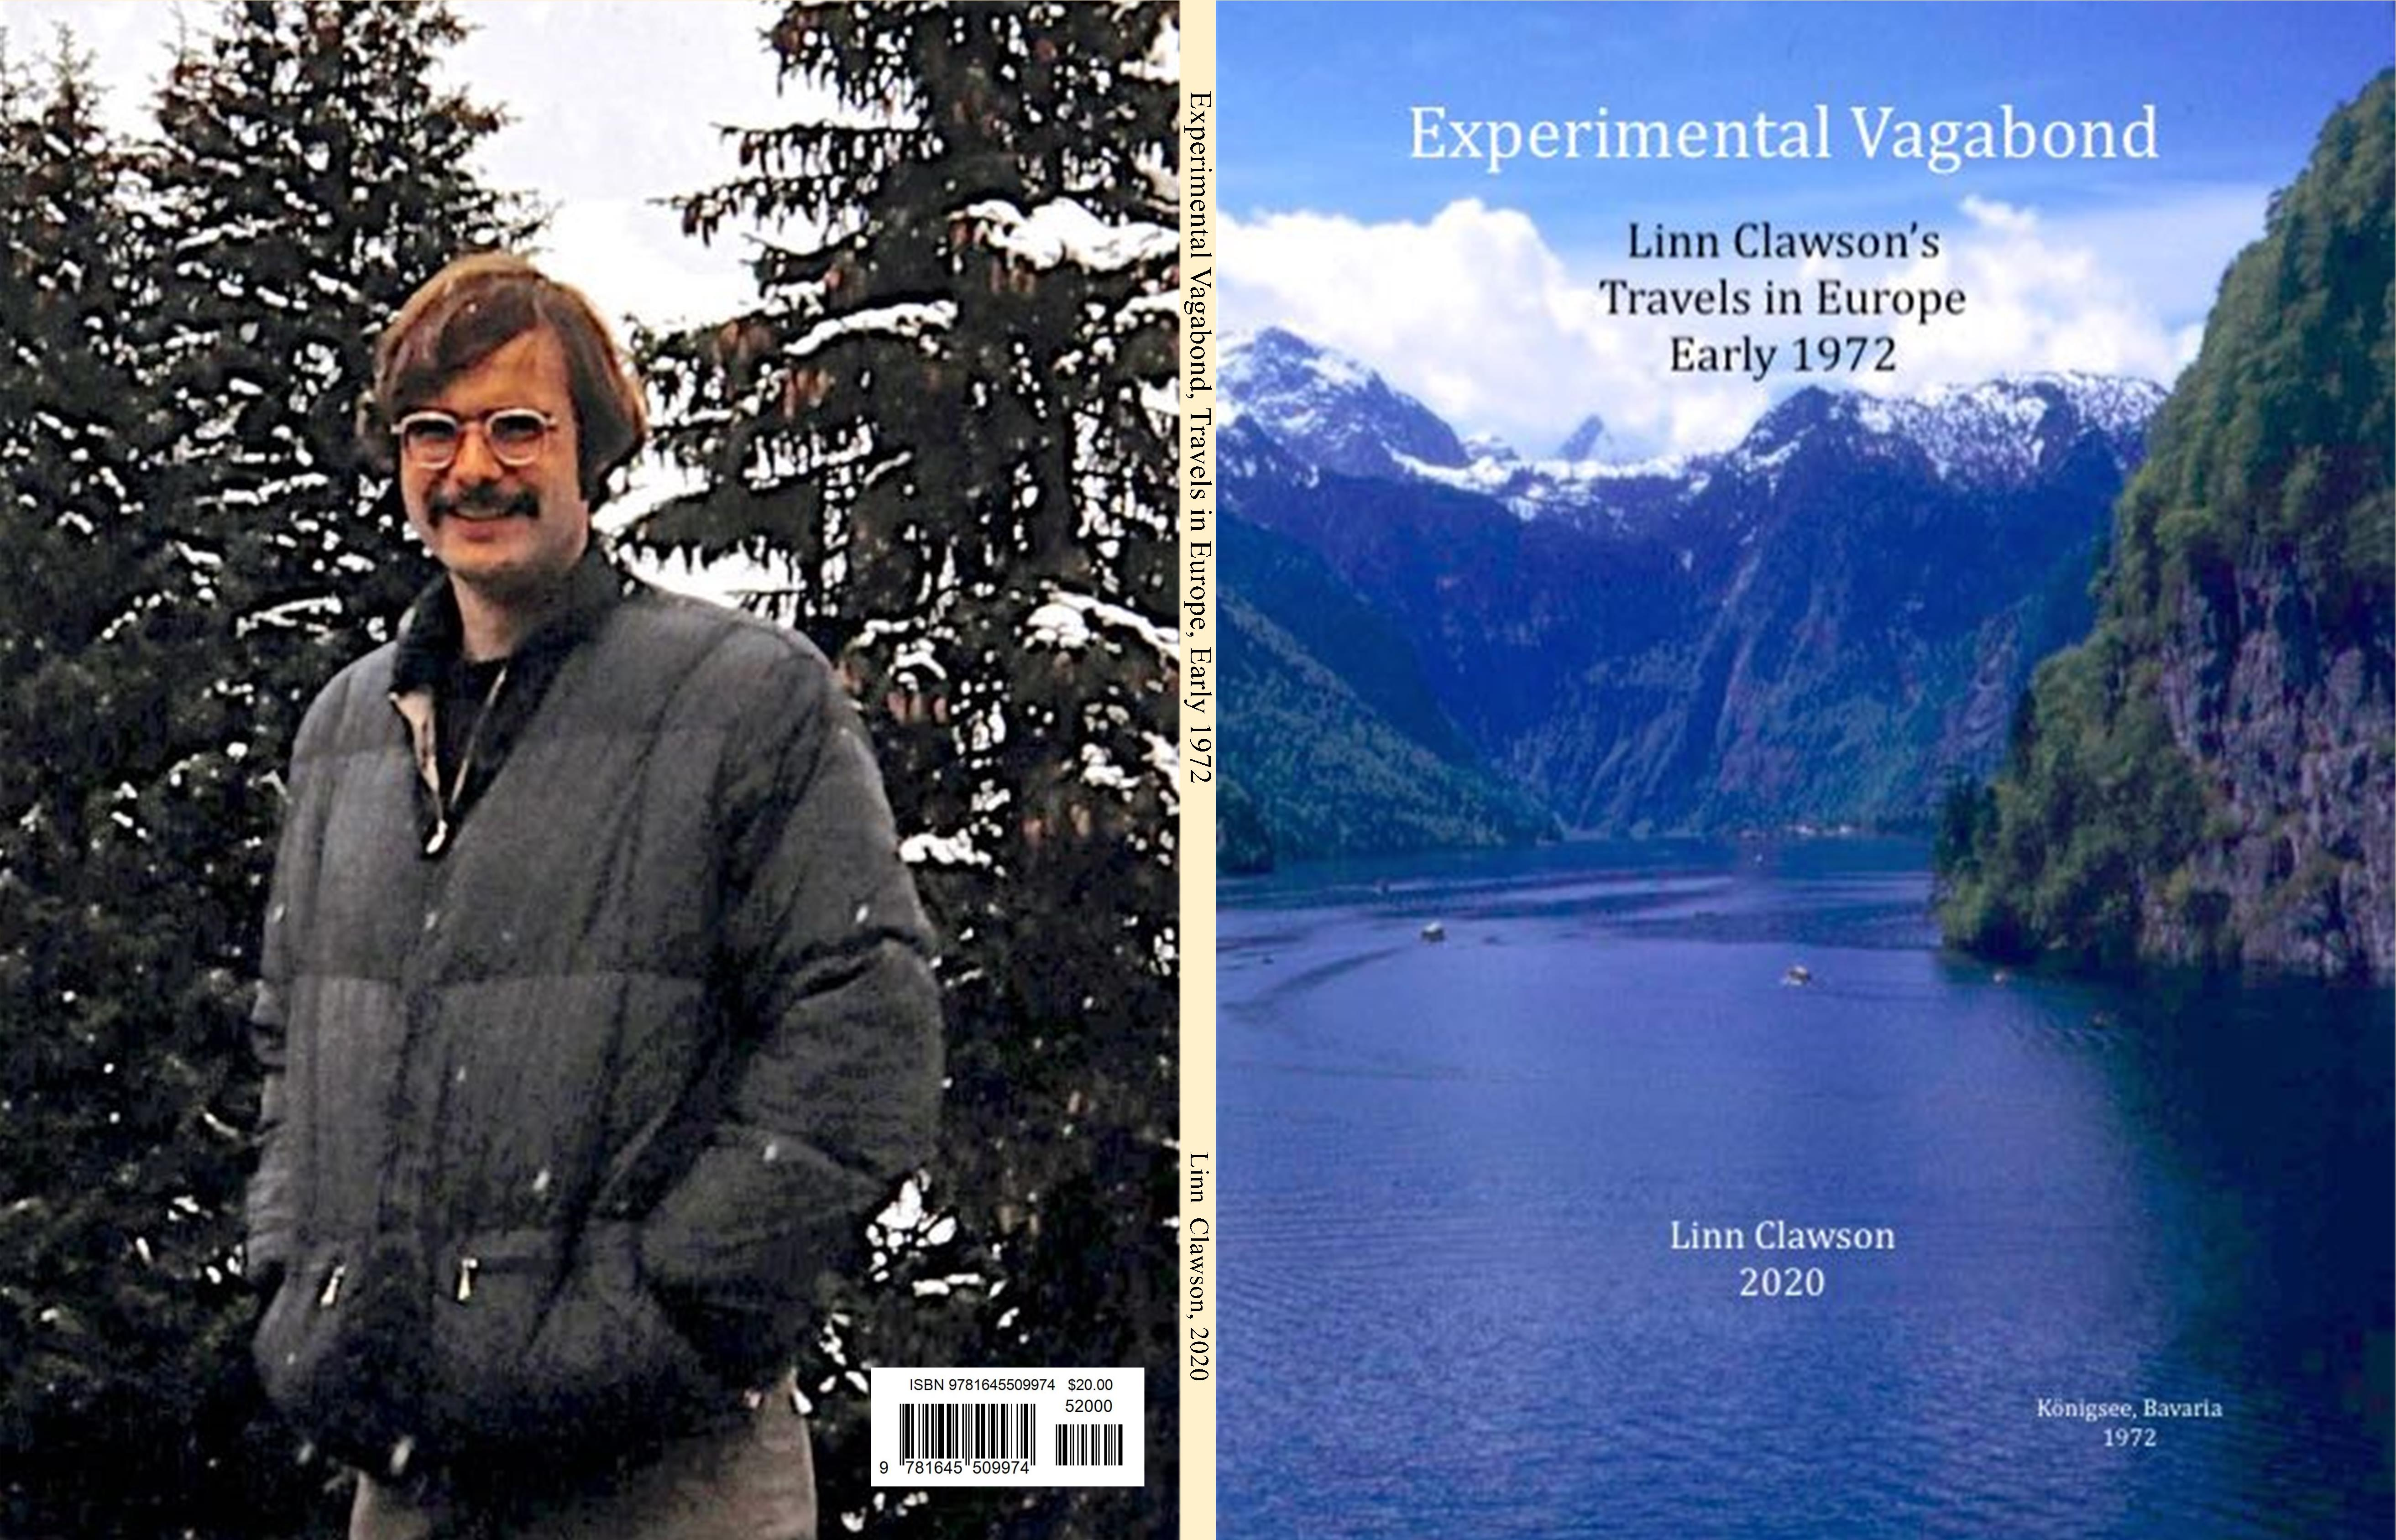 Experimental Vagabond, Travels in Europe, Early 1972 cover image